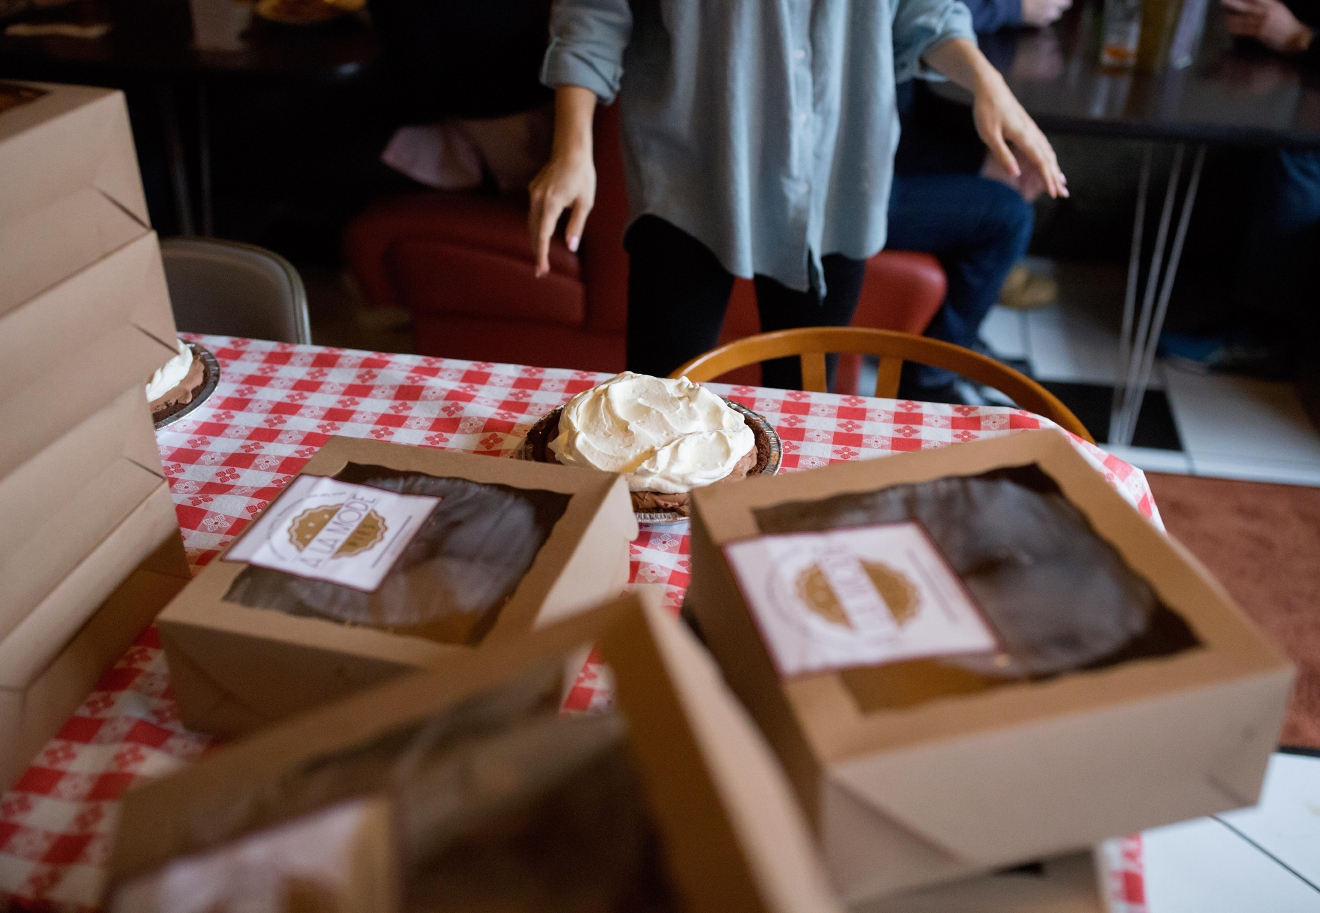 A chocolate pie from A la Mode Pies waits to be devoured before the second annual Pi Day Pie Eating Contest at Lost Lake Cafe. The winner of the competition chooses a charity of their choice to receive $500. (Sy Bean / Seattle Refined)